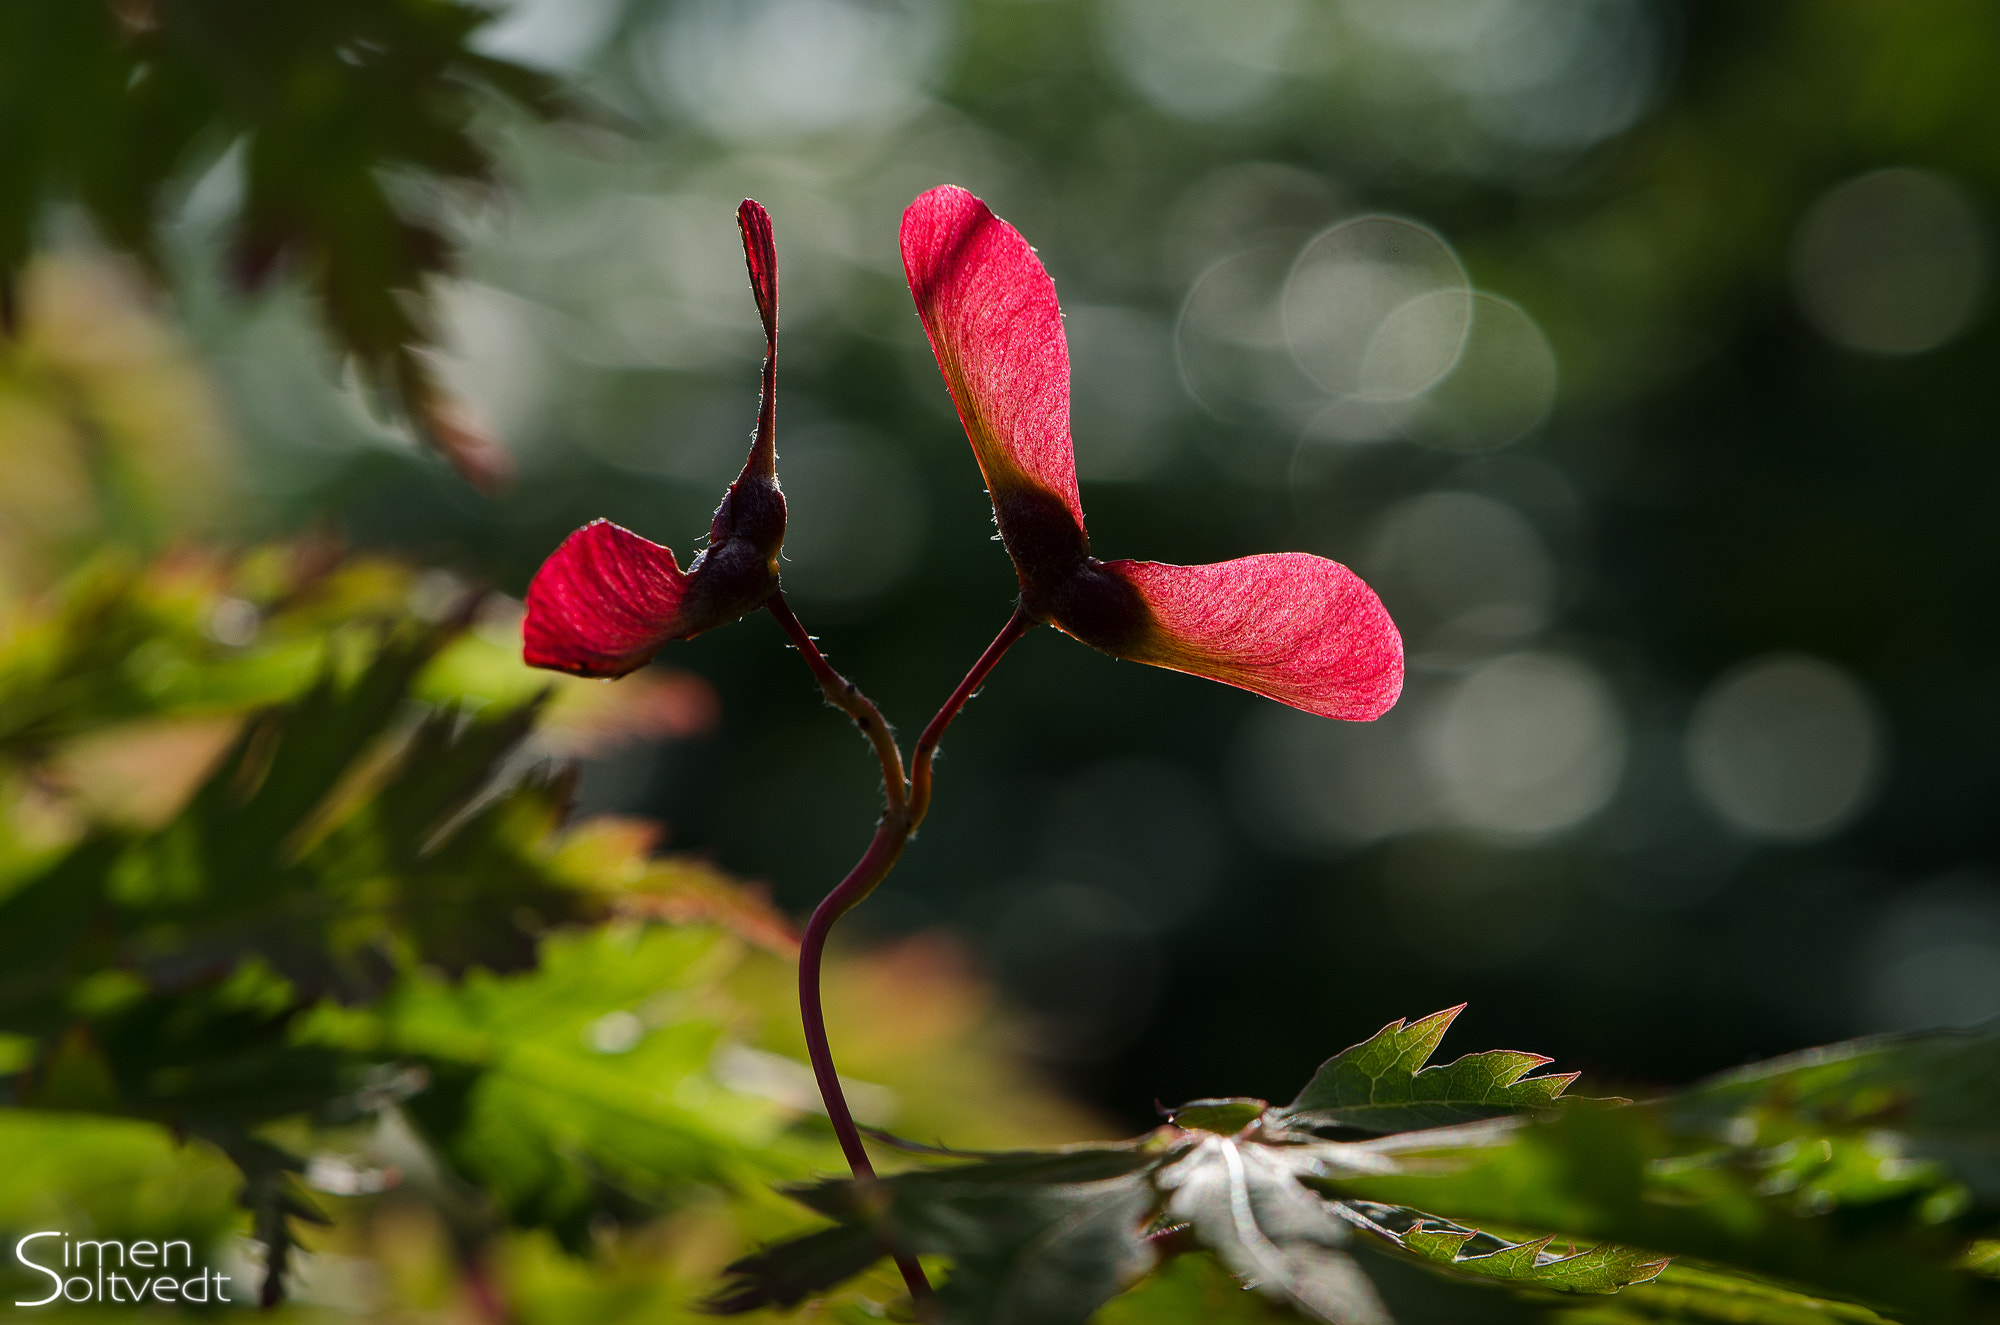 Photograph Backlit seed by Simen Soltvedt on 500px